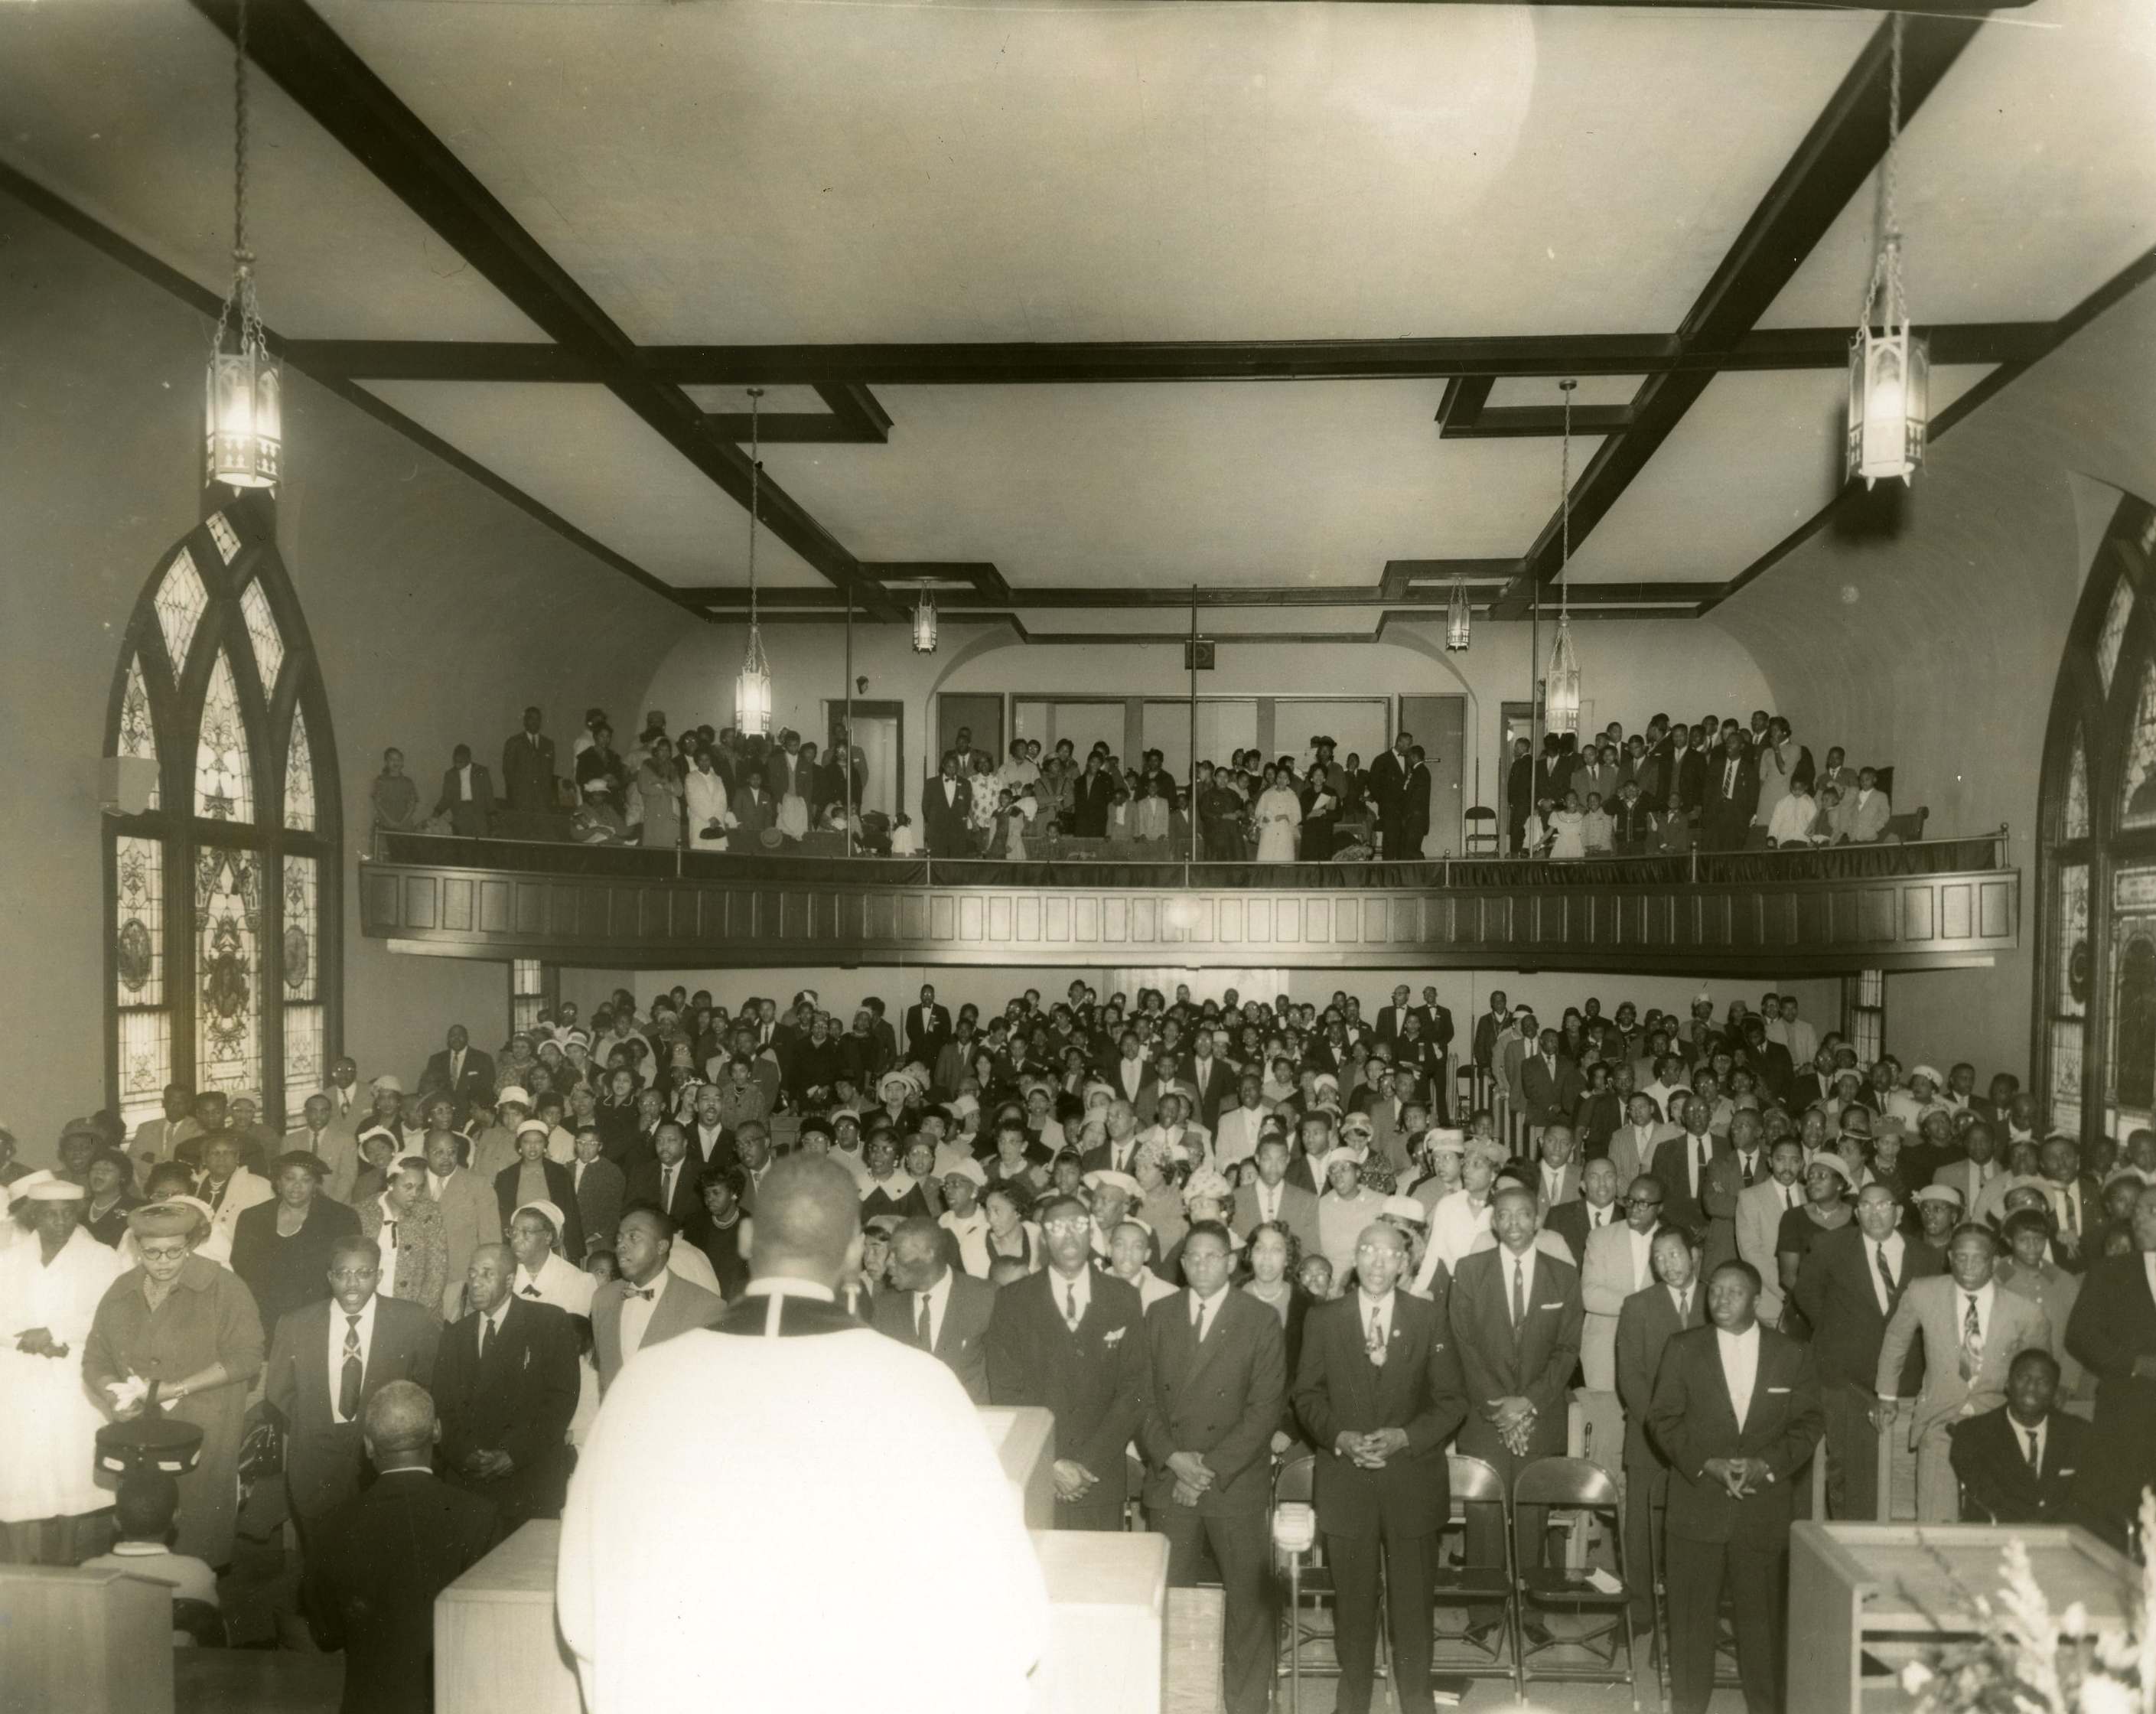 Rev. O.B. Williams leads services at the Vancouver Ave. First Baptist, 1961